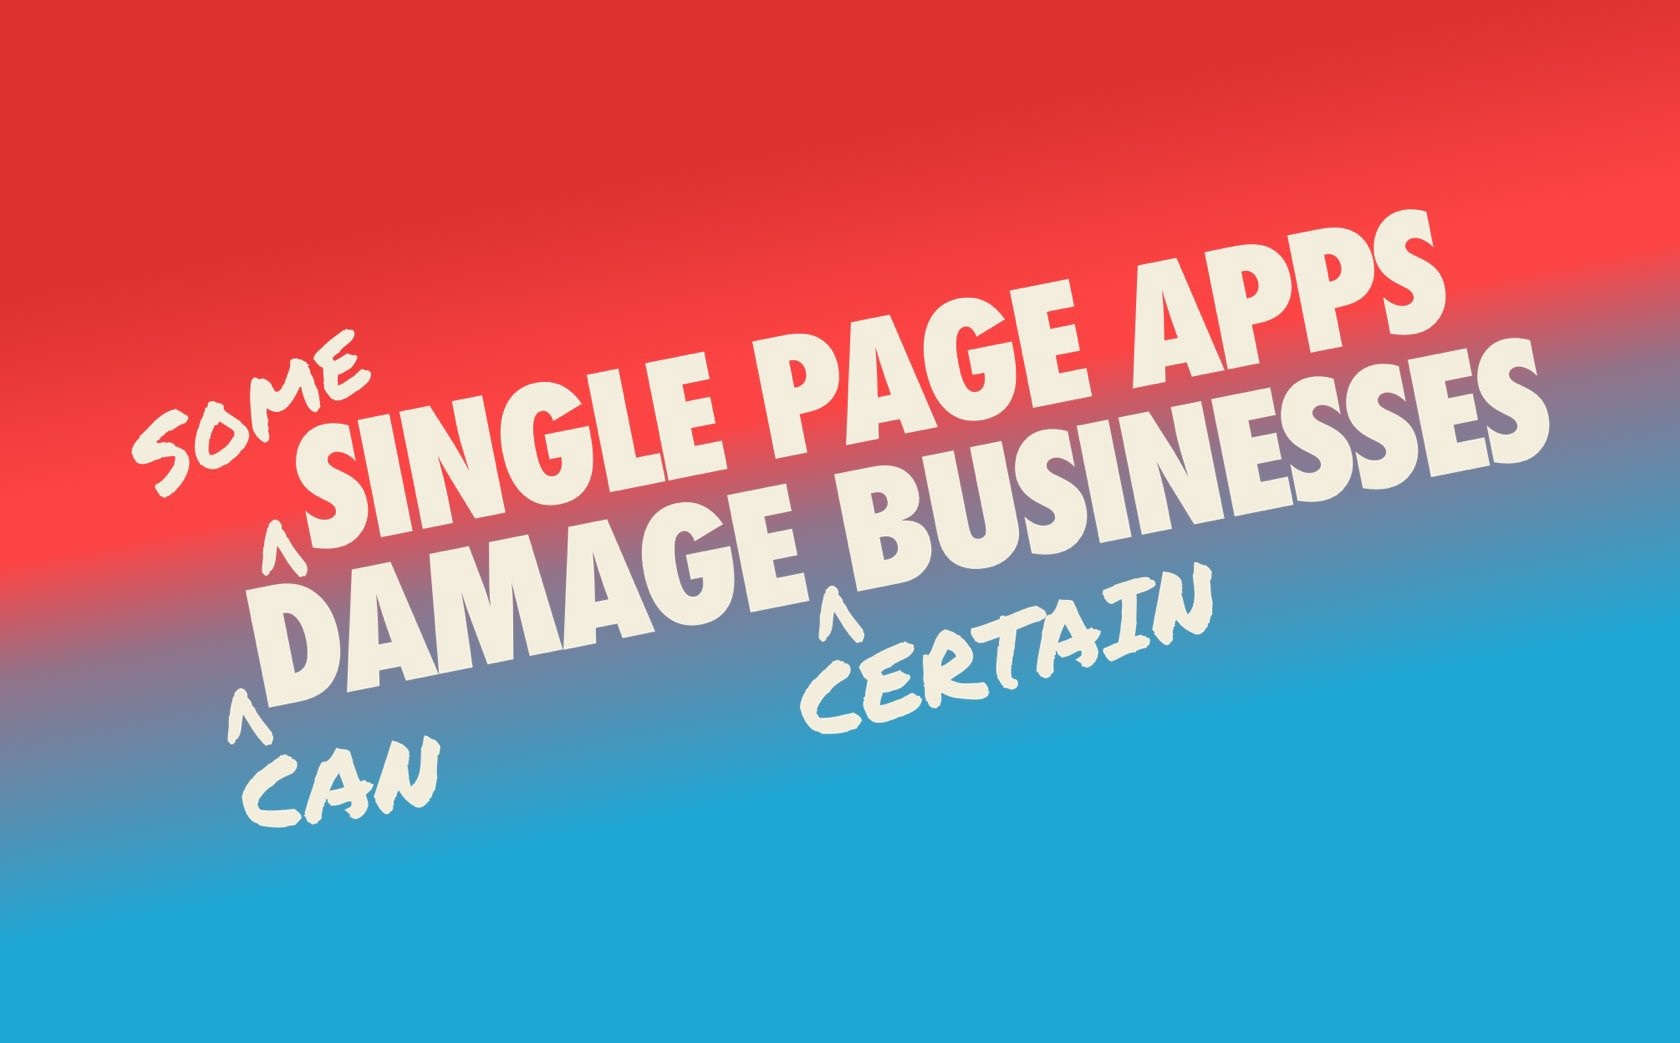 /create-your-own-dysfunctional-single-page-app-in-five-easy-steps-7bfcba9df6df feature image